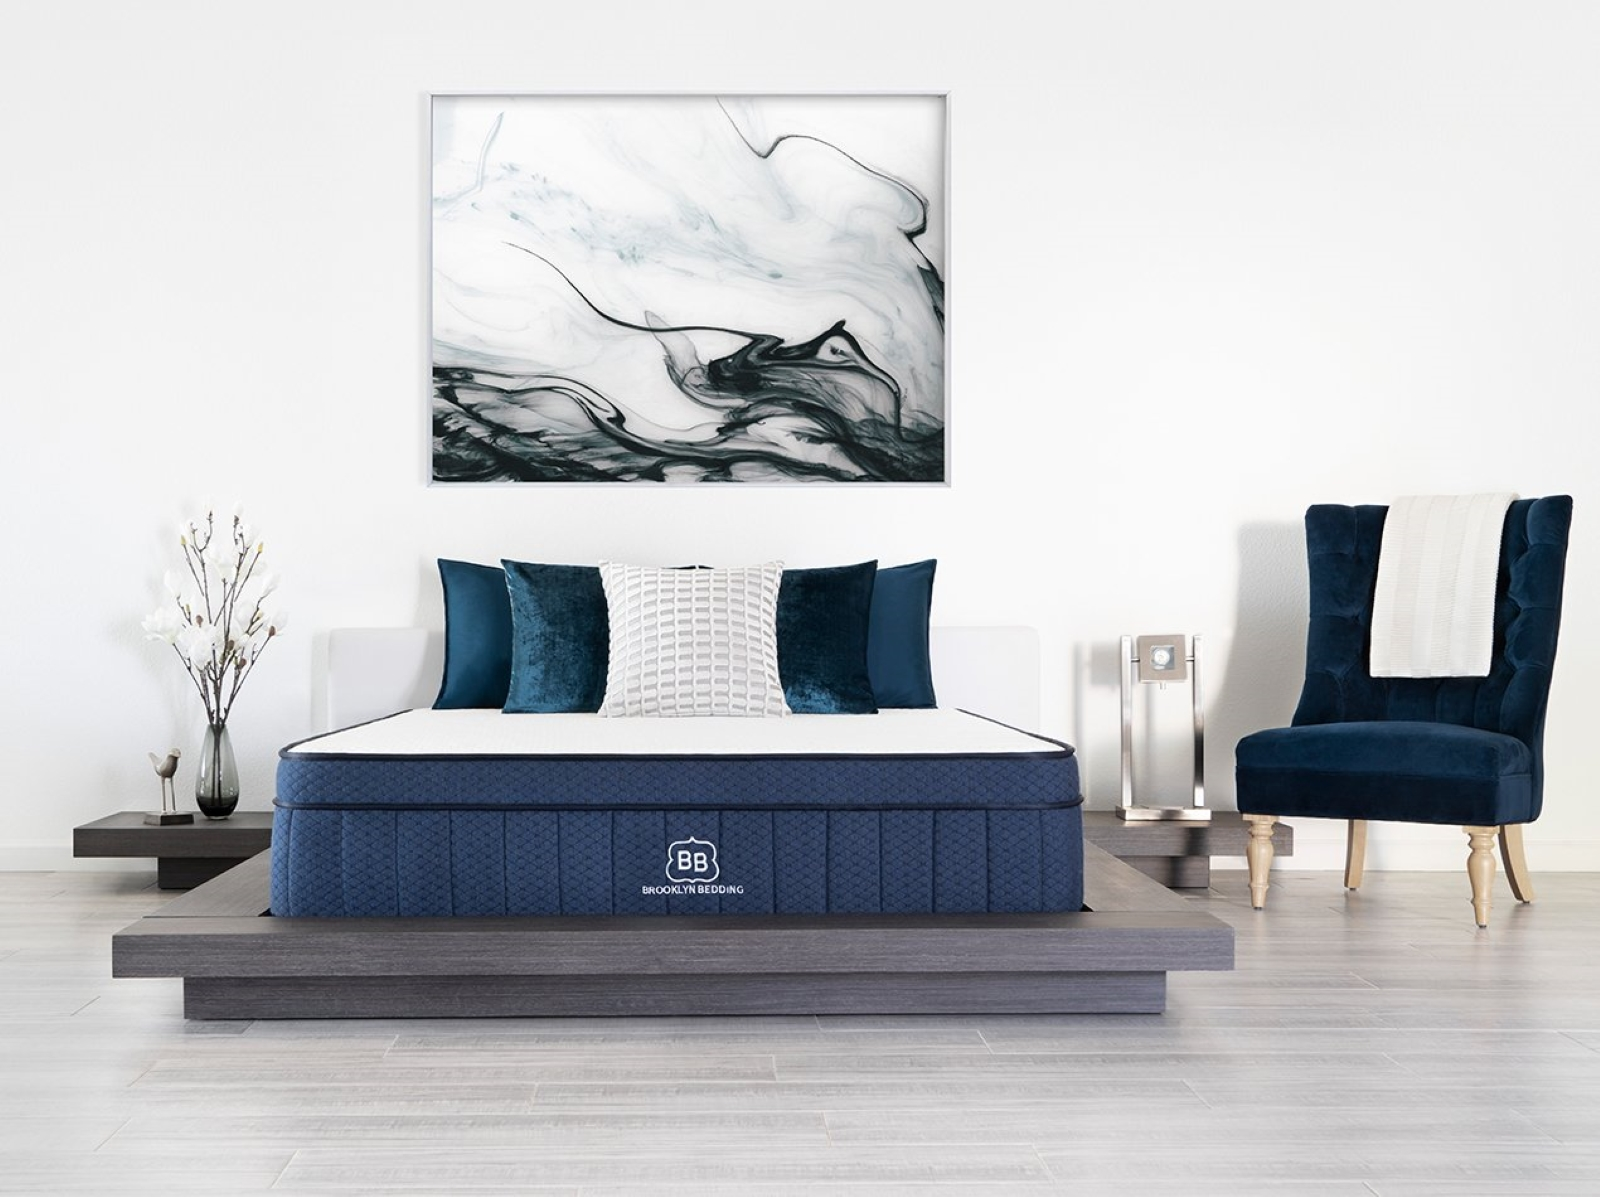 Blue based brooklyn bedding mattress in a gray bed frame with two night stands on the side of the bed with gray flooring and a blue chair on the side with a painting hanging over the bed